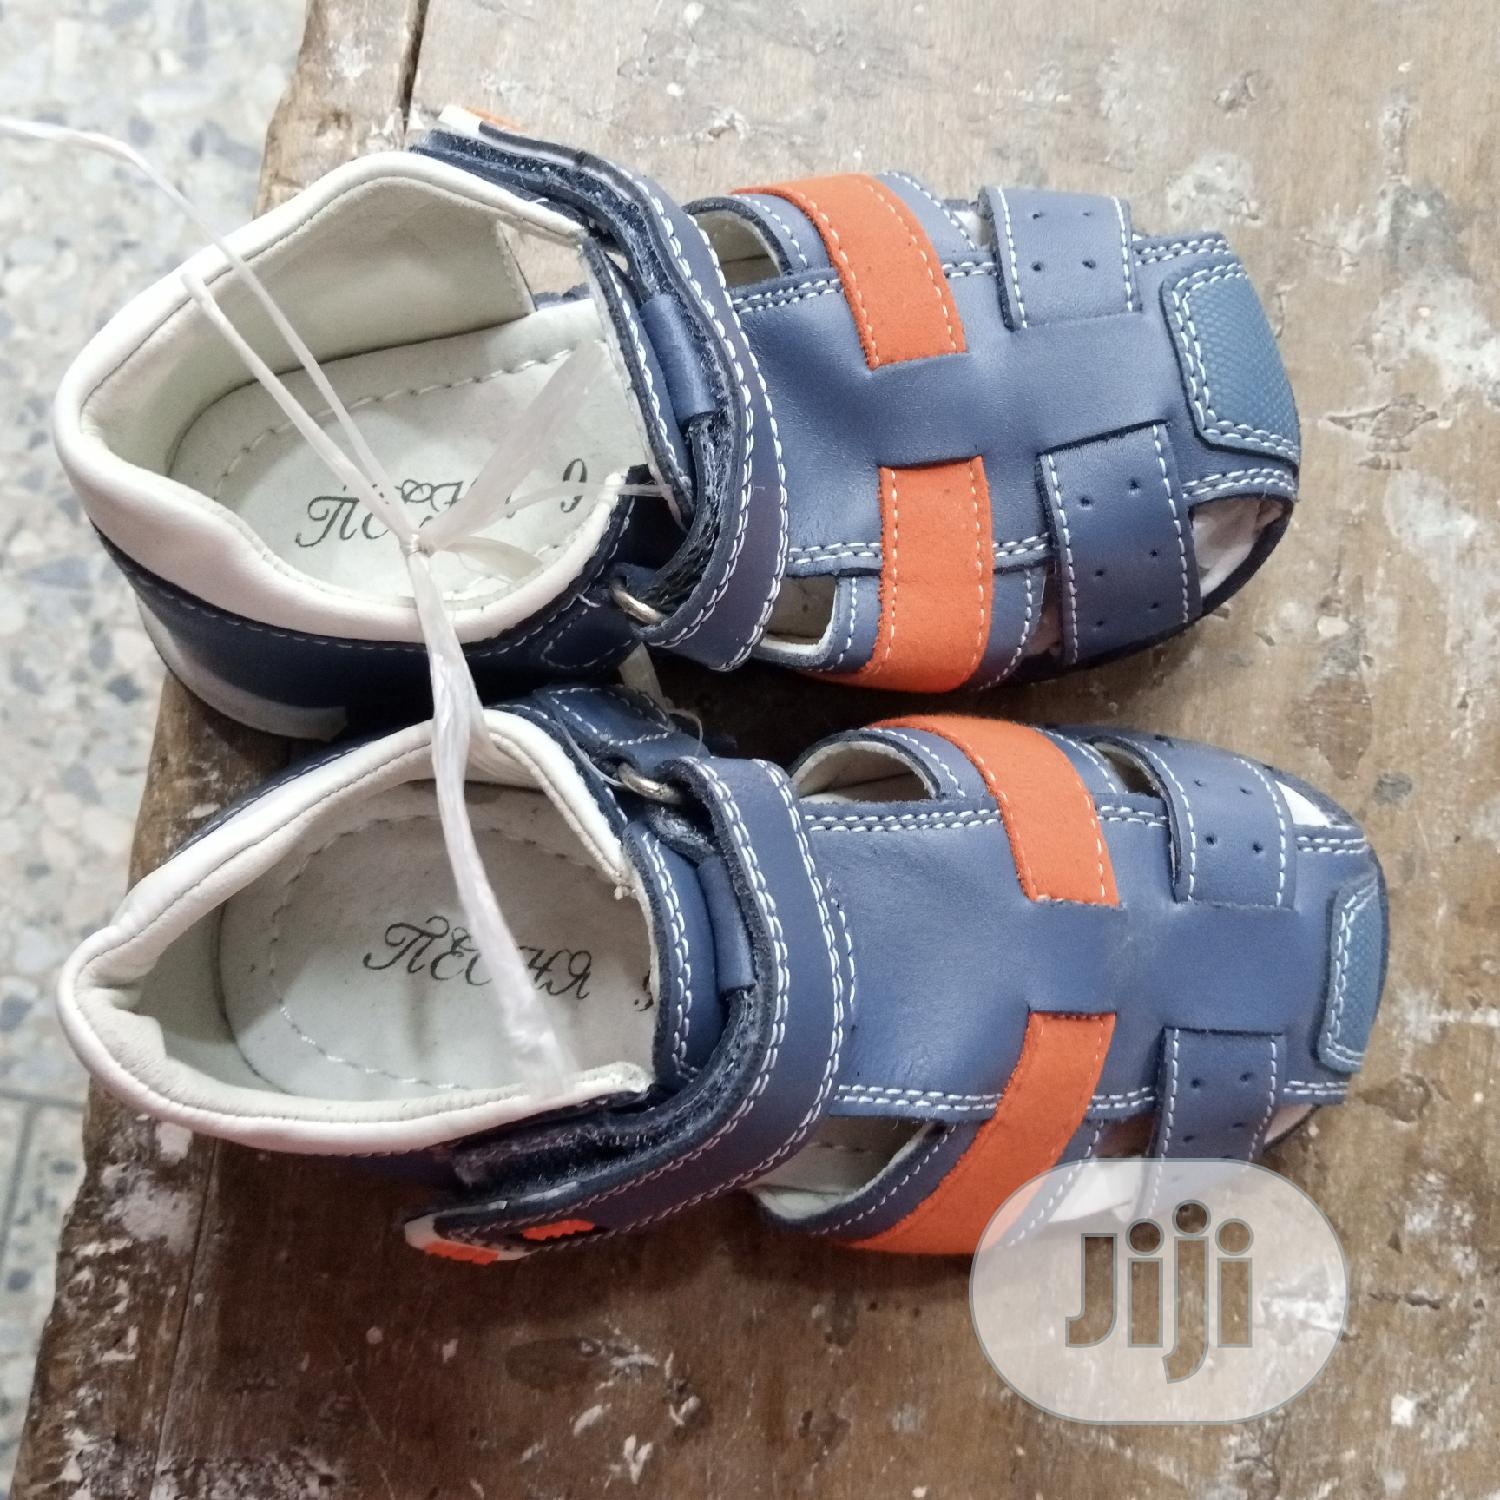 Kiddies Sandals Both In Wholesale And Retail Price | Children's Shoes for sale in Lagos Island, Lagos State, Nigeria